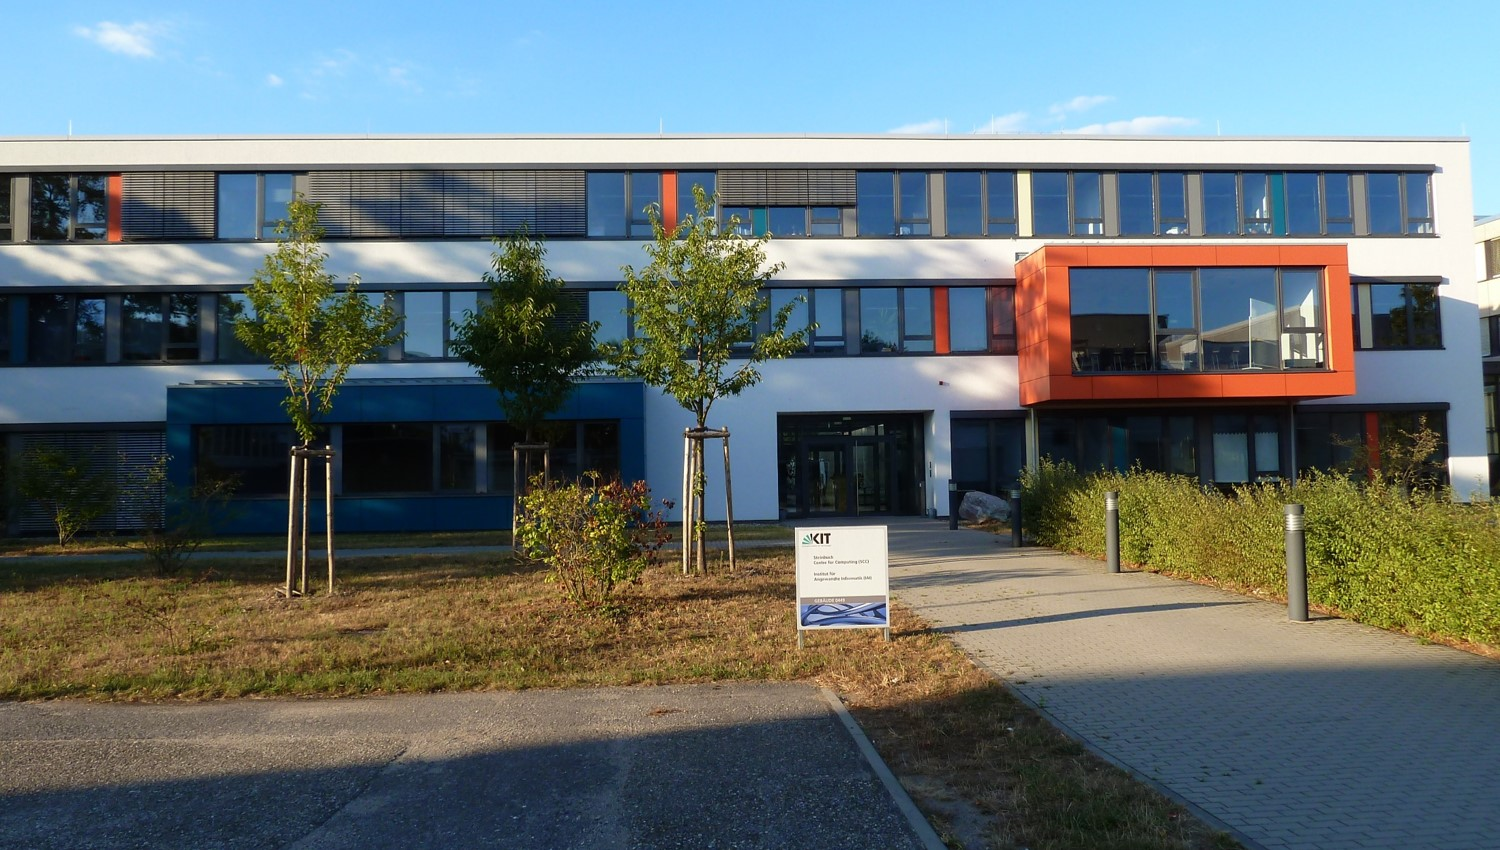 Steinbuch Centre for Computing